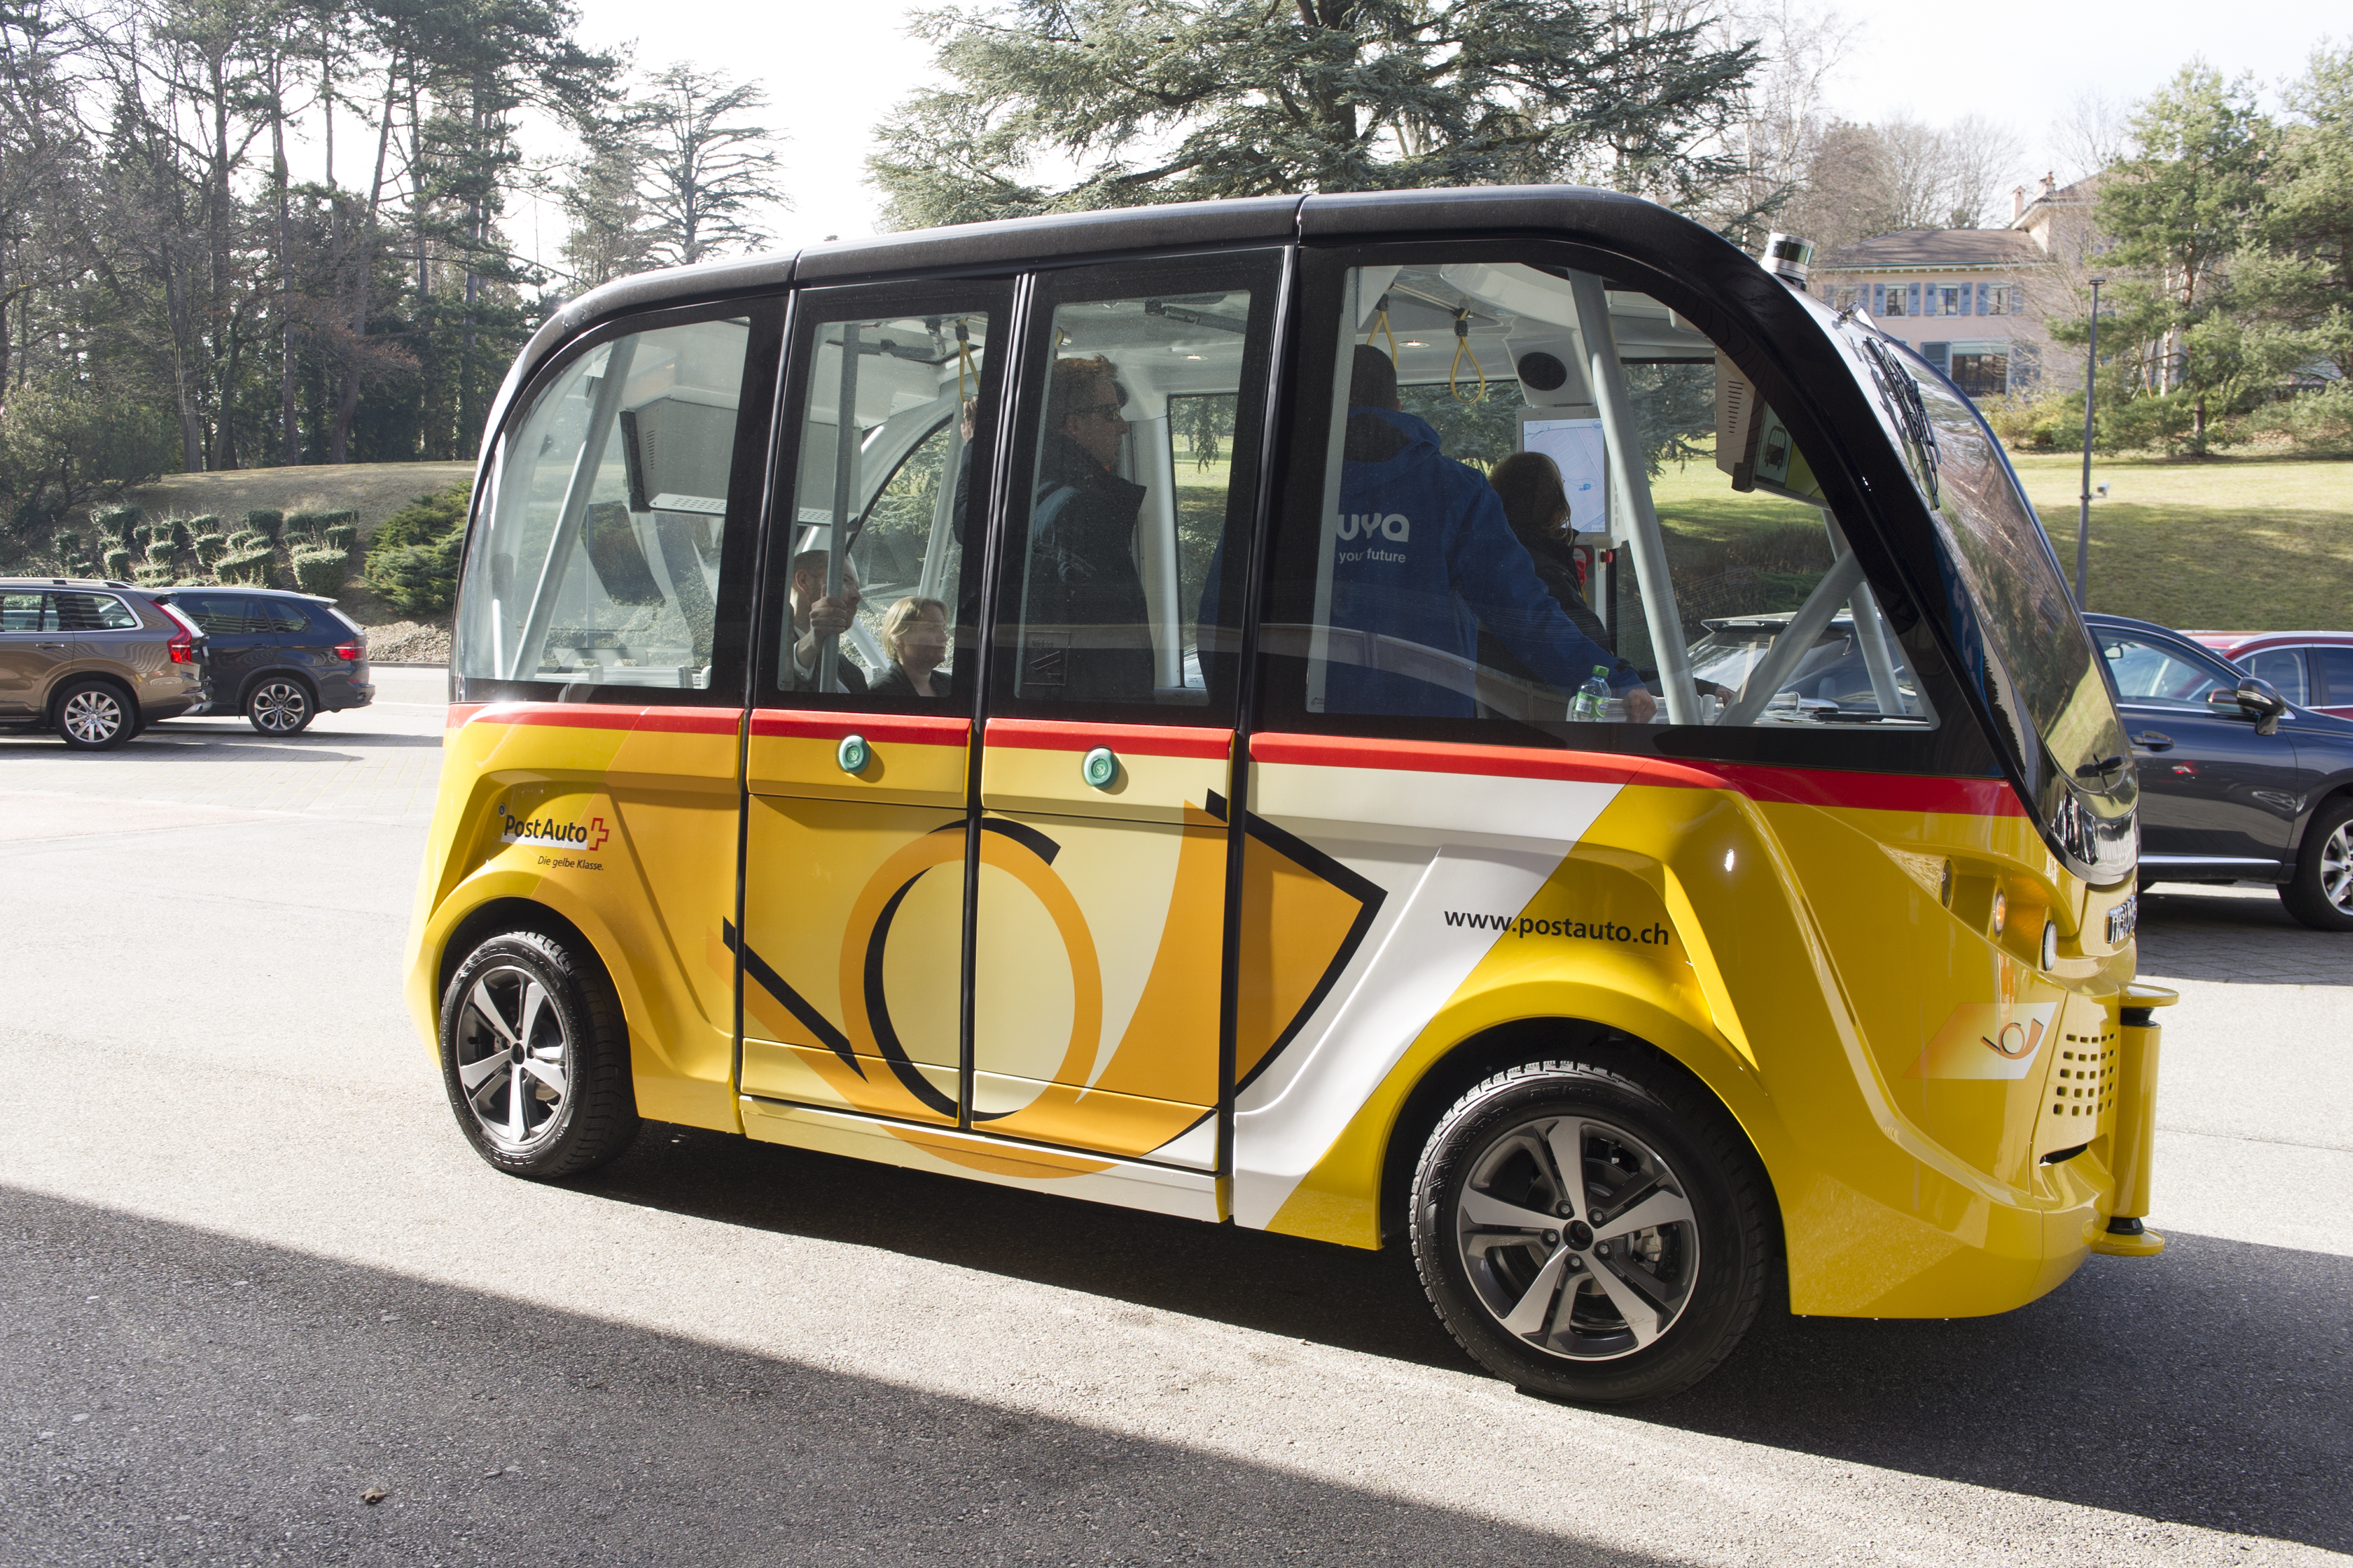 Navya driverless, electric and autonomous shuttle vehicle (credits: Violaine Martin / UN Geneva / Flickr Creative Commons Attribution-NonCommercial-NoDerivs 2.0 Generic (CC BY-NC-ND 2.0))